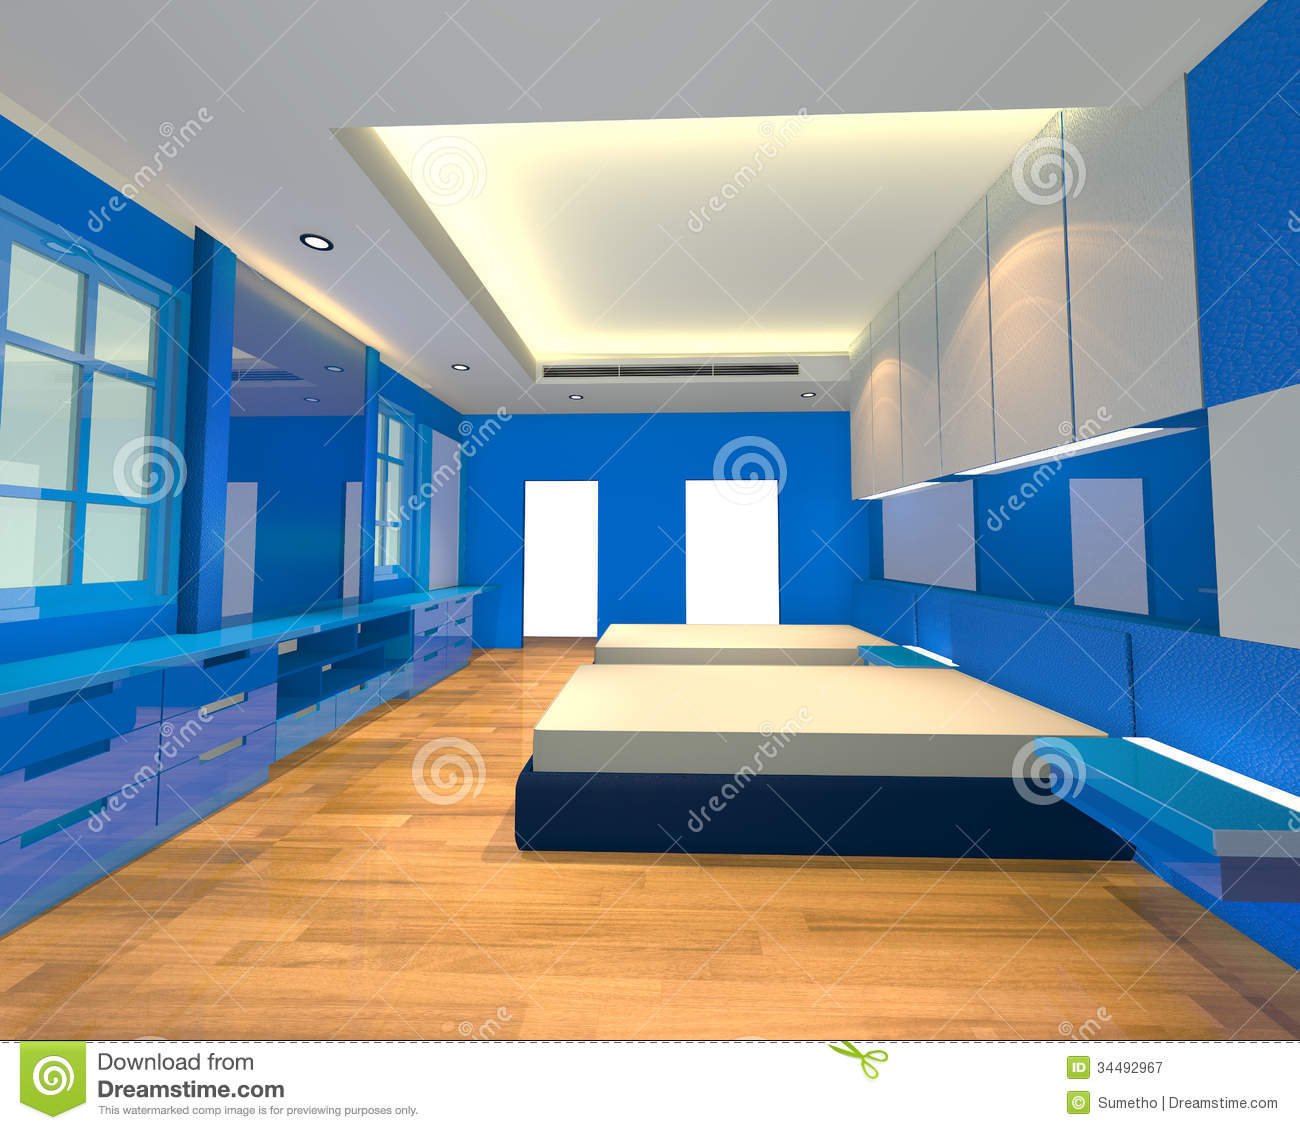 Bedroom With Blue Wall And Wooden Floor Ideal For Interior Design